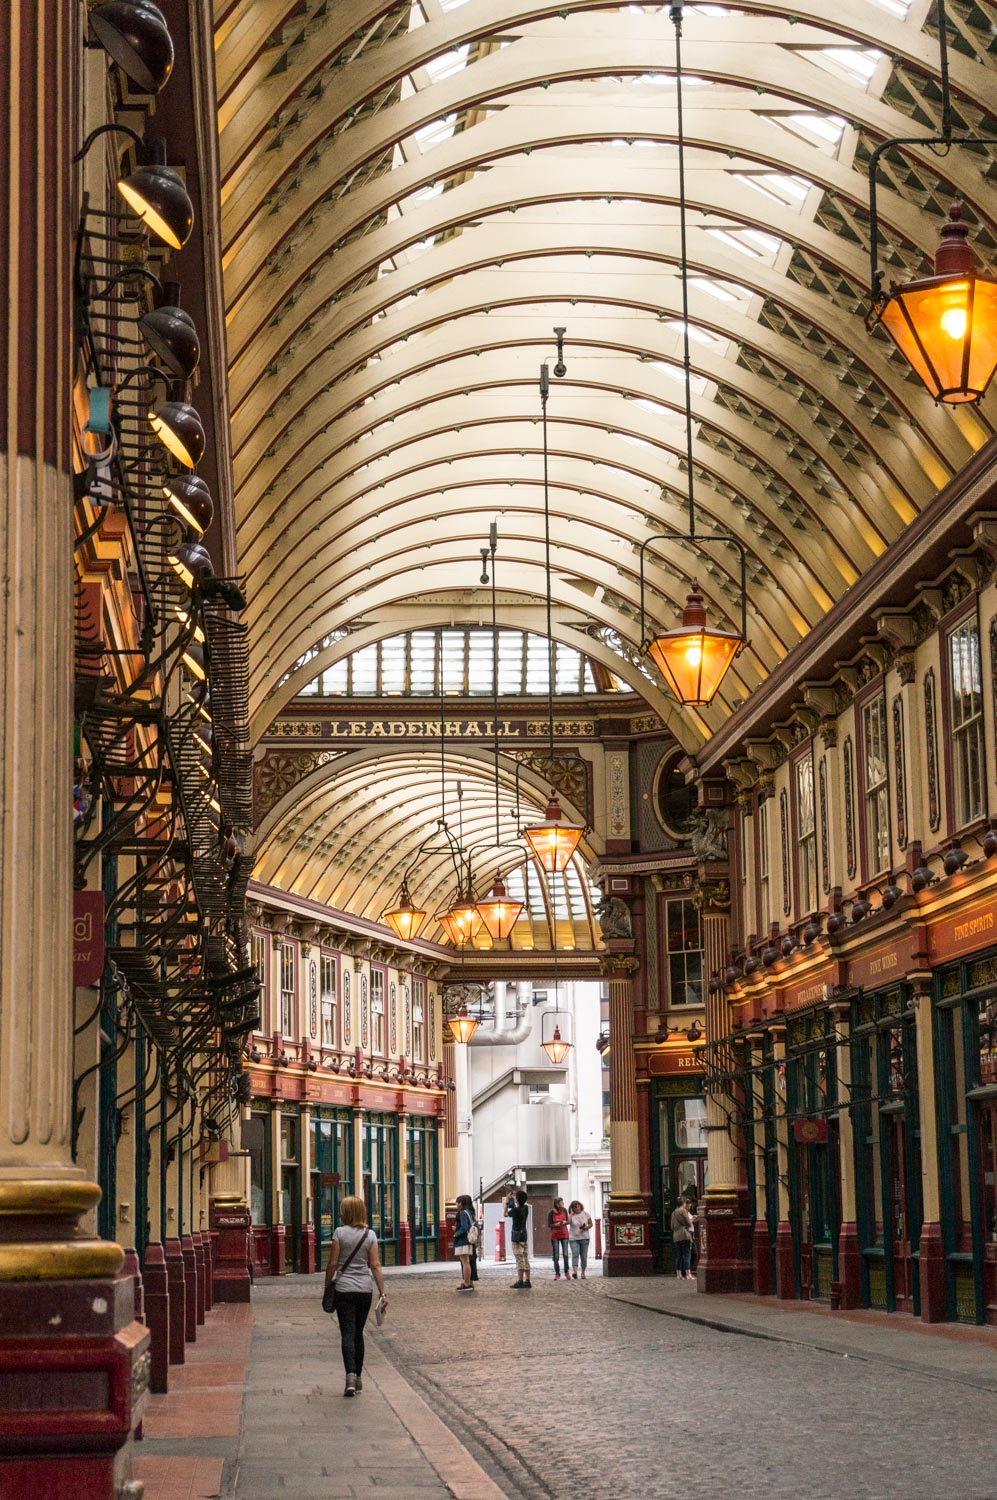 Leadenhall Market looking decidedly quieter than usual!